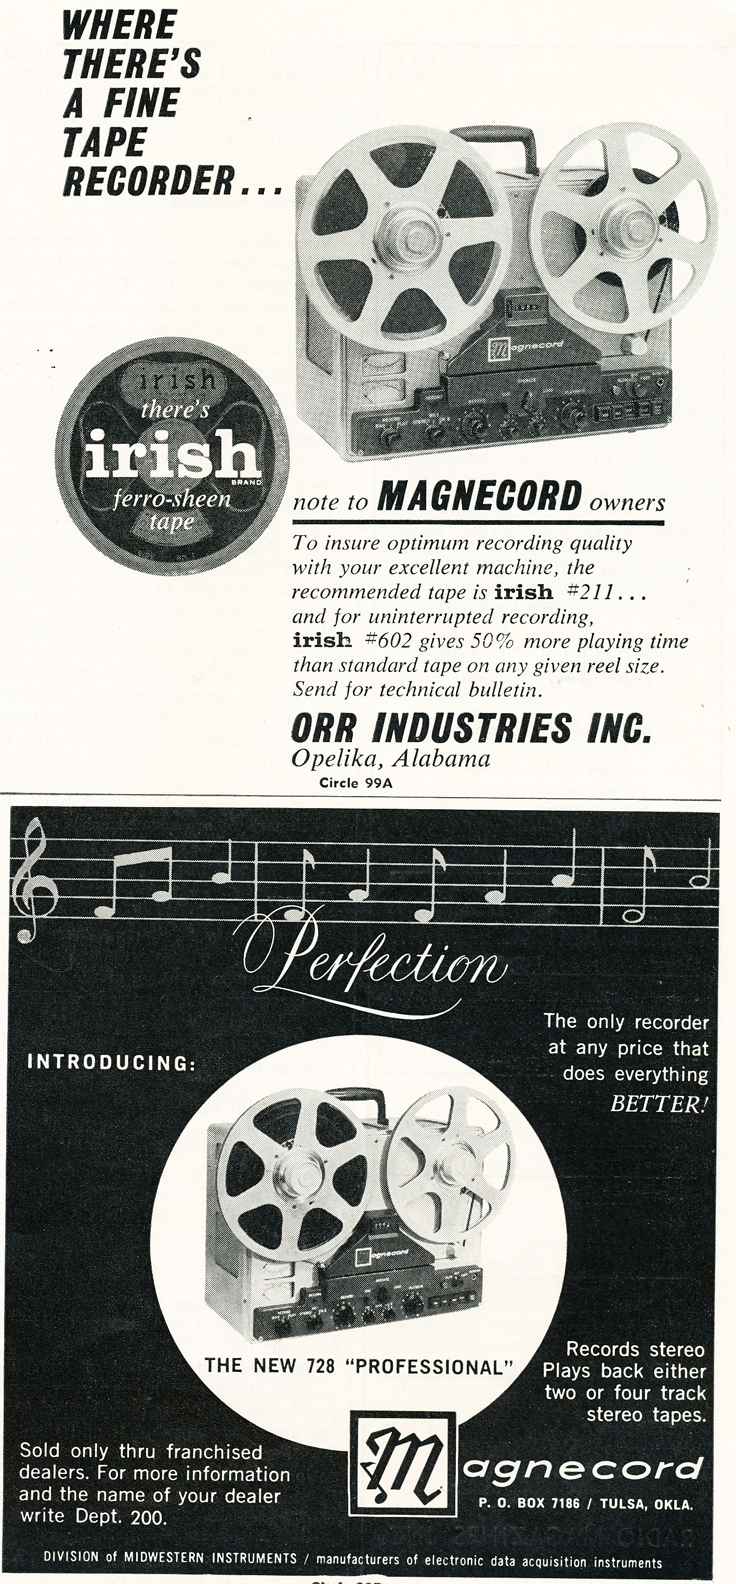 1959 ad for Irish recording tape featuring the Magnecord reel to reel tape recorder in Reel2ReelTexas.com's vintage recording collection